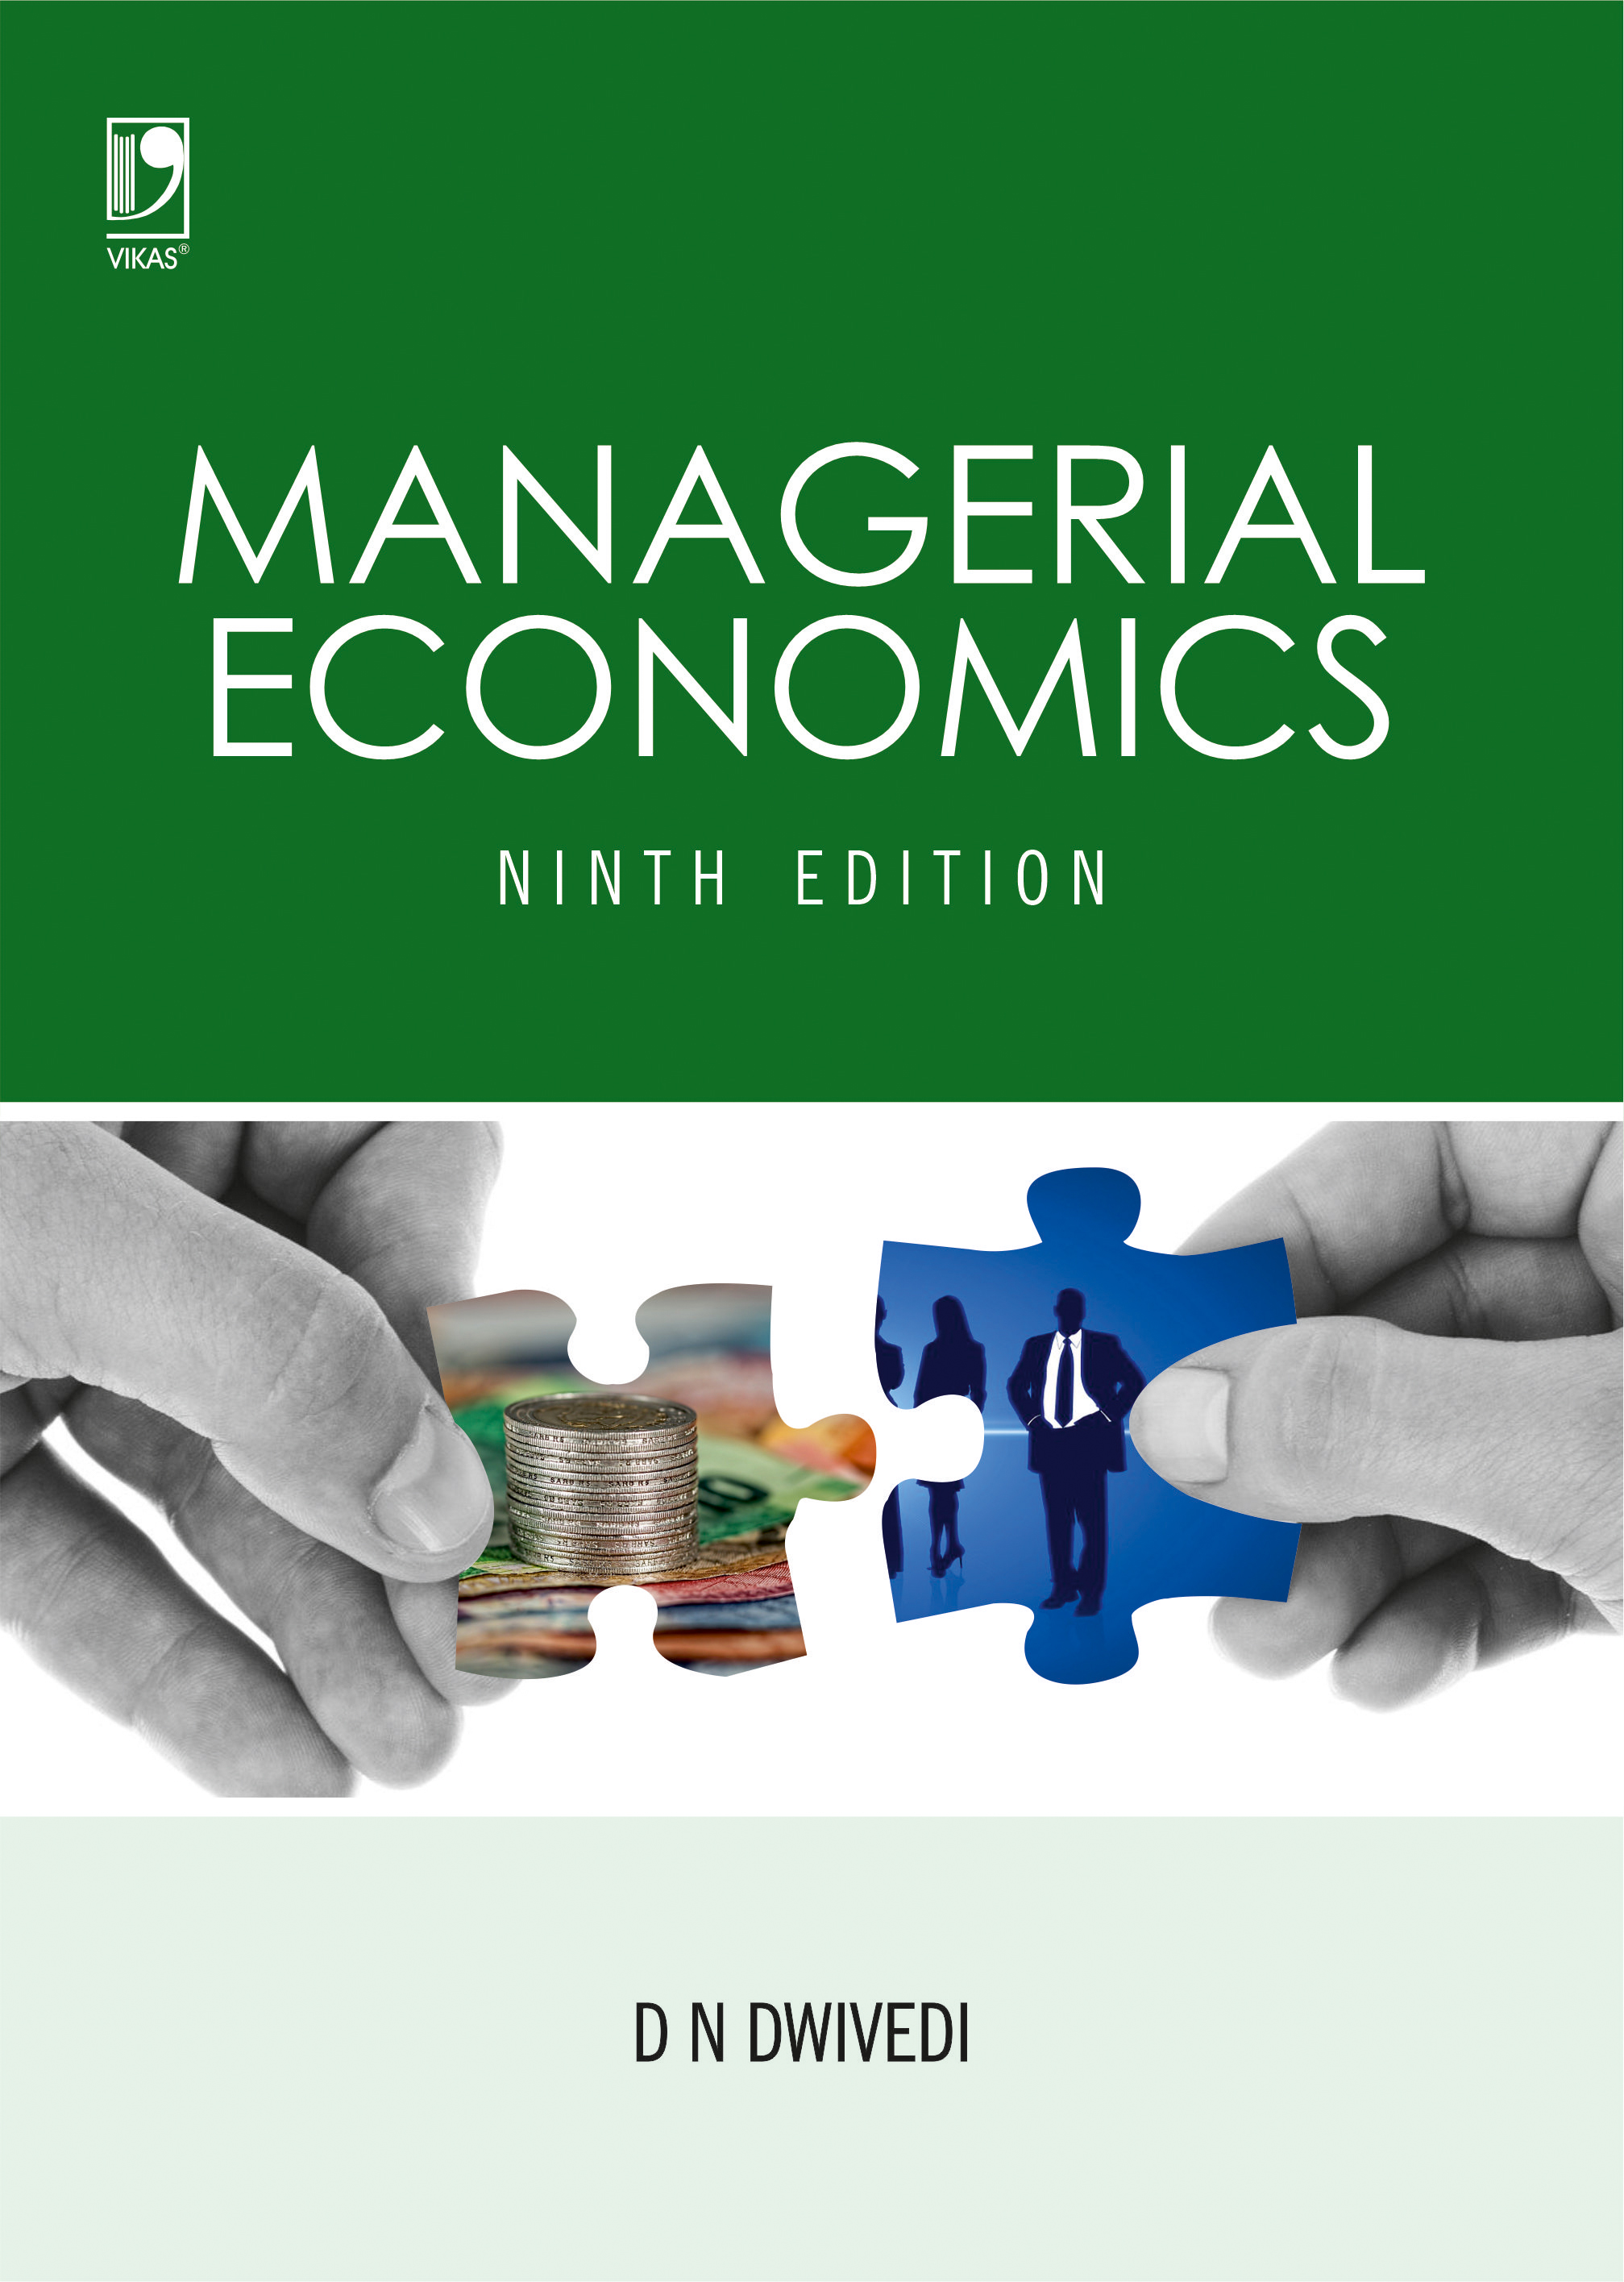 Managerial Economics: A definitive text for the latest syllabi of MBA, MCom, BBA, CA, ICWA and ICS., 9/e